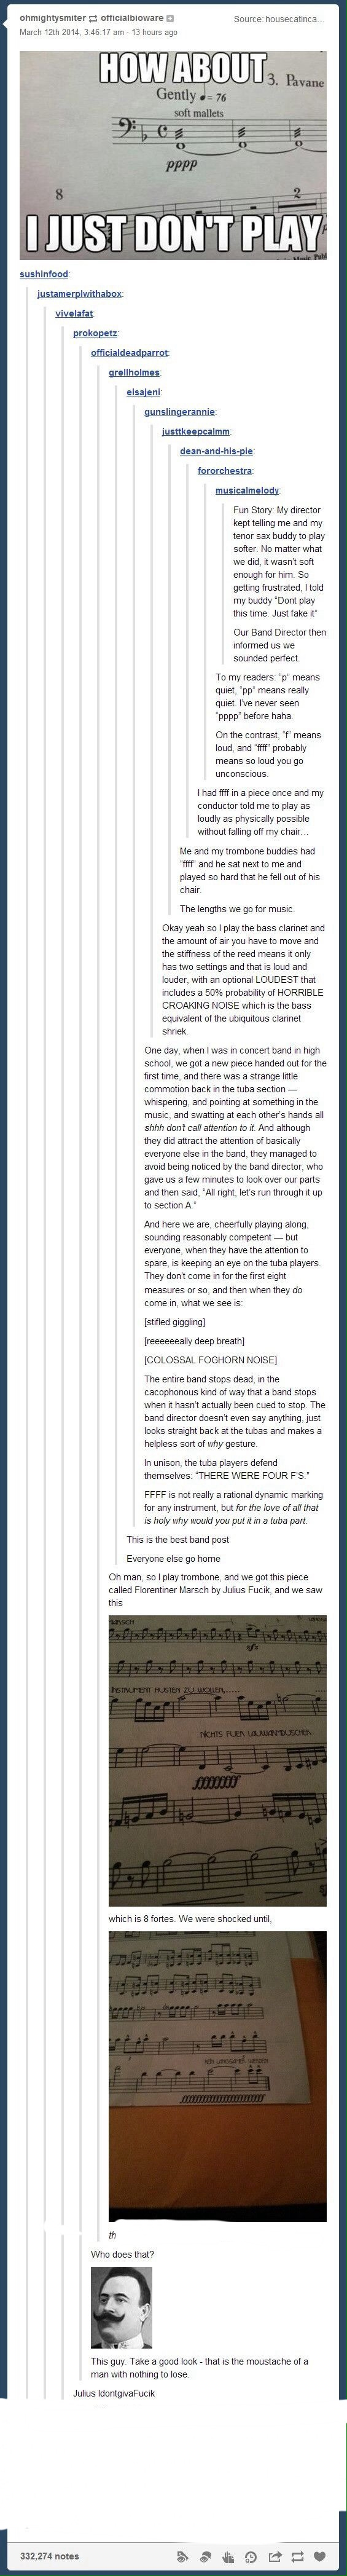 This is why I love tumblr!